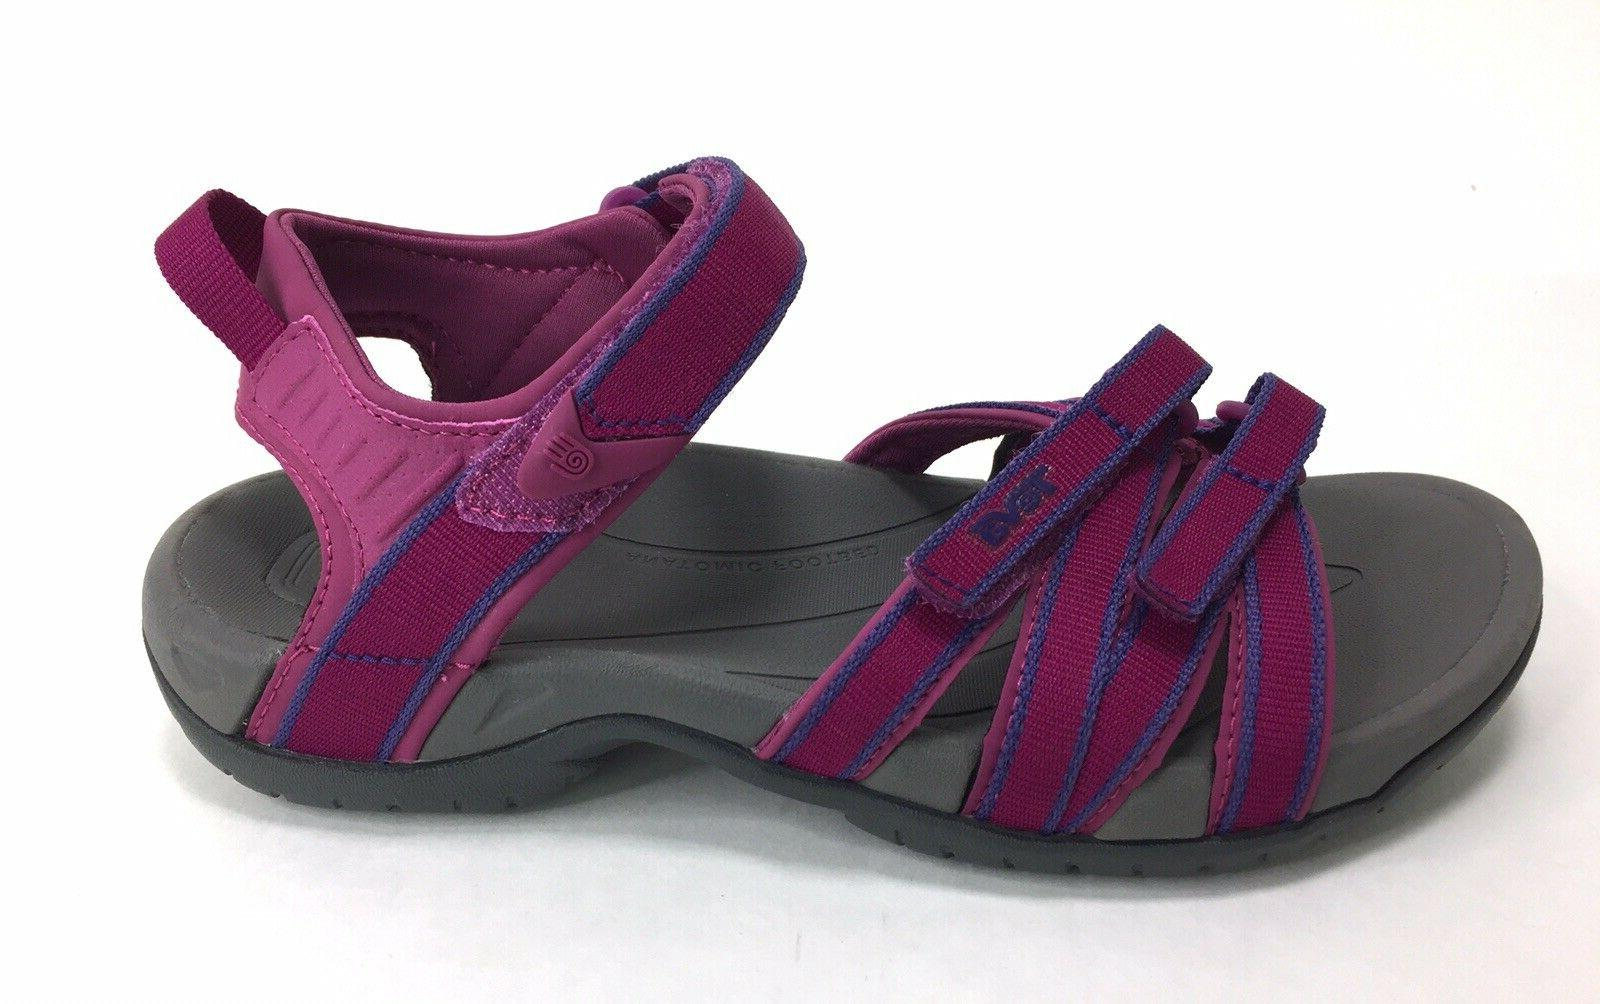 New! Teva Women's Tirra Hiking Purple Pink Shoes